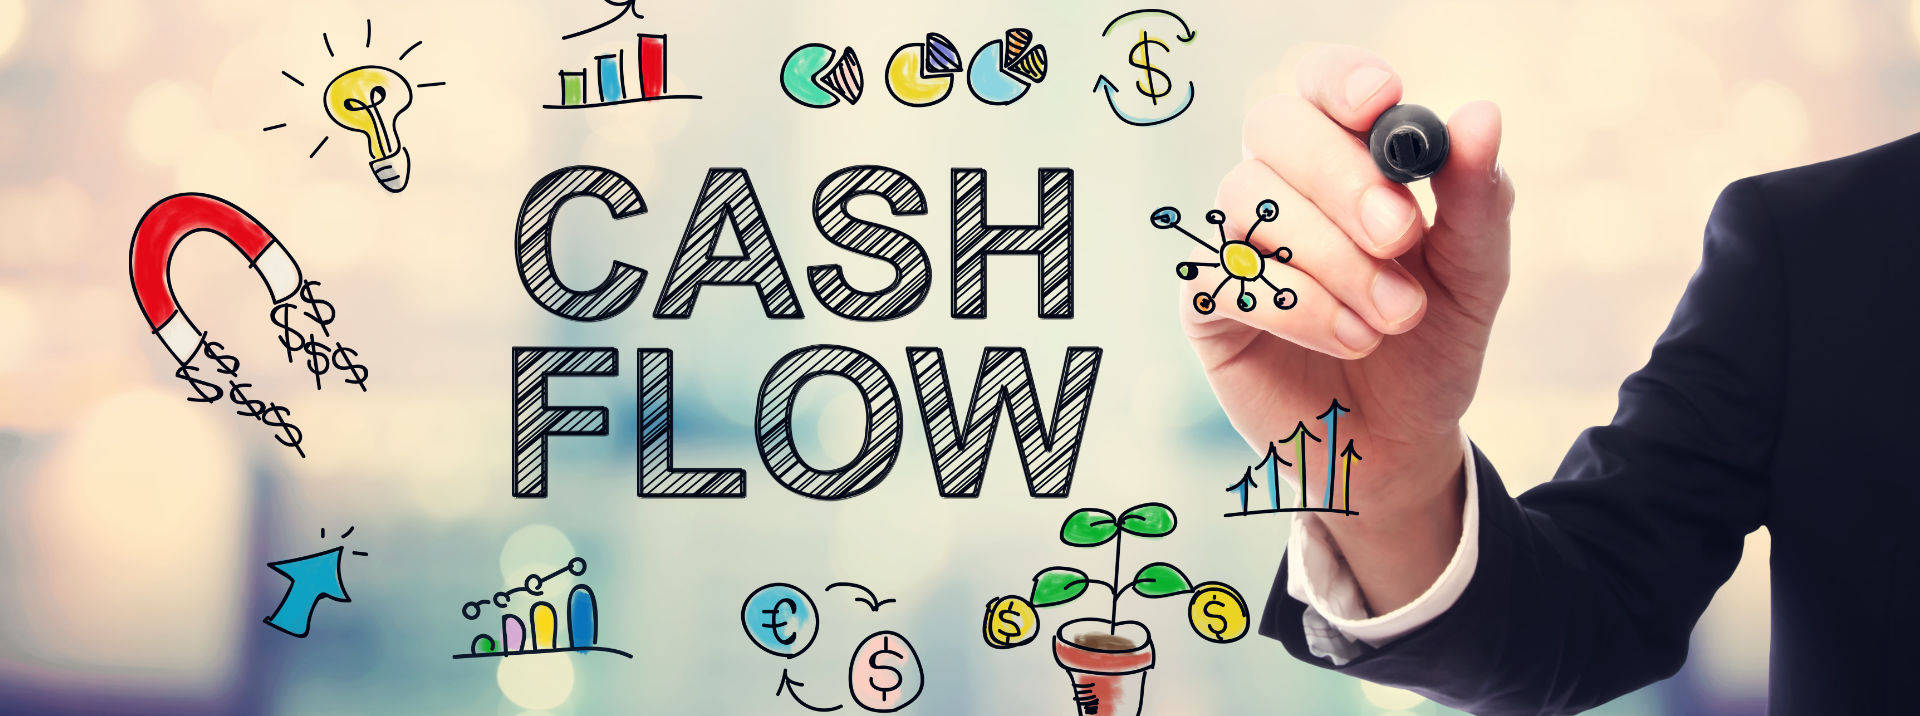 Cash flow infographic with man drawing